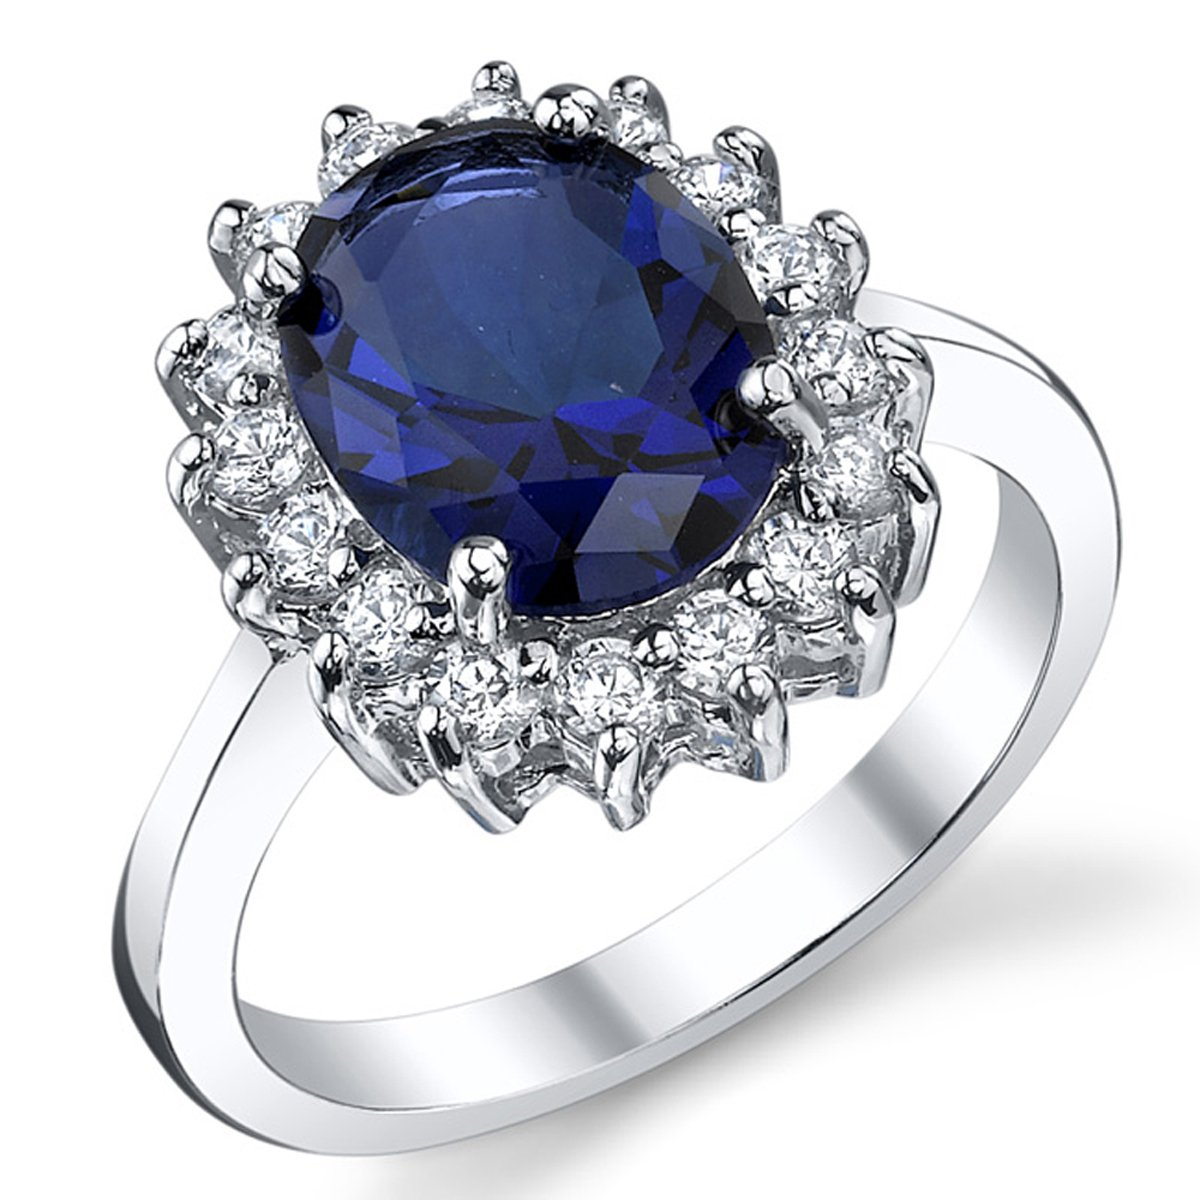 Solid Sterling Silver Kate Middleton's Engagement Ring with Simulated Sapphire Blue Color Cubic Zirconia SILR6